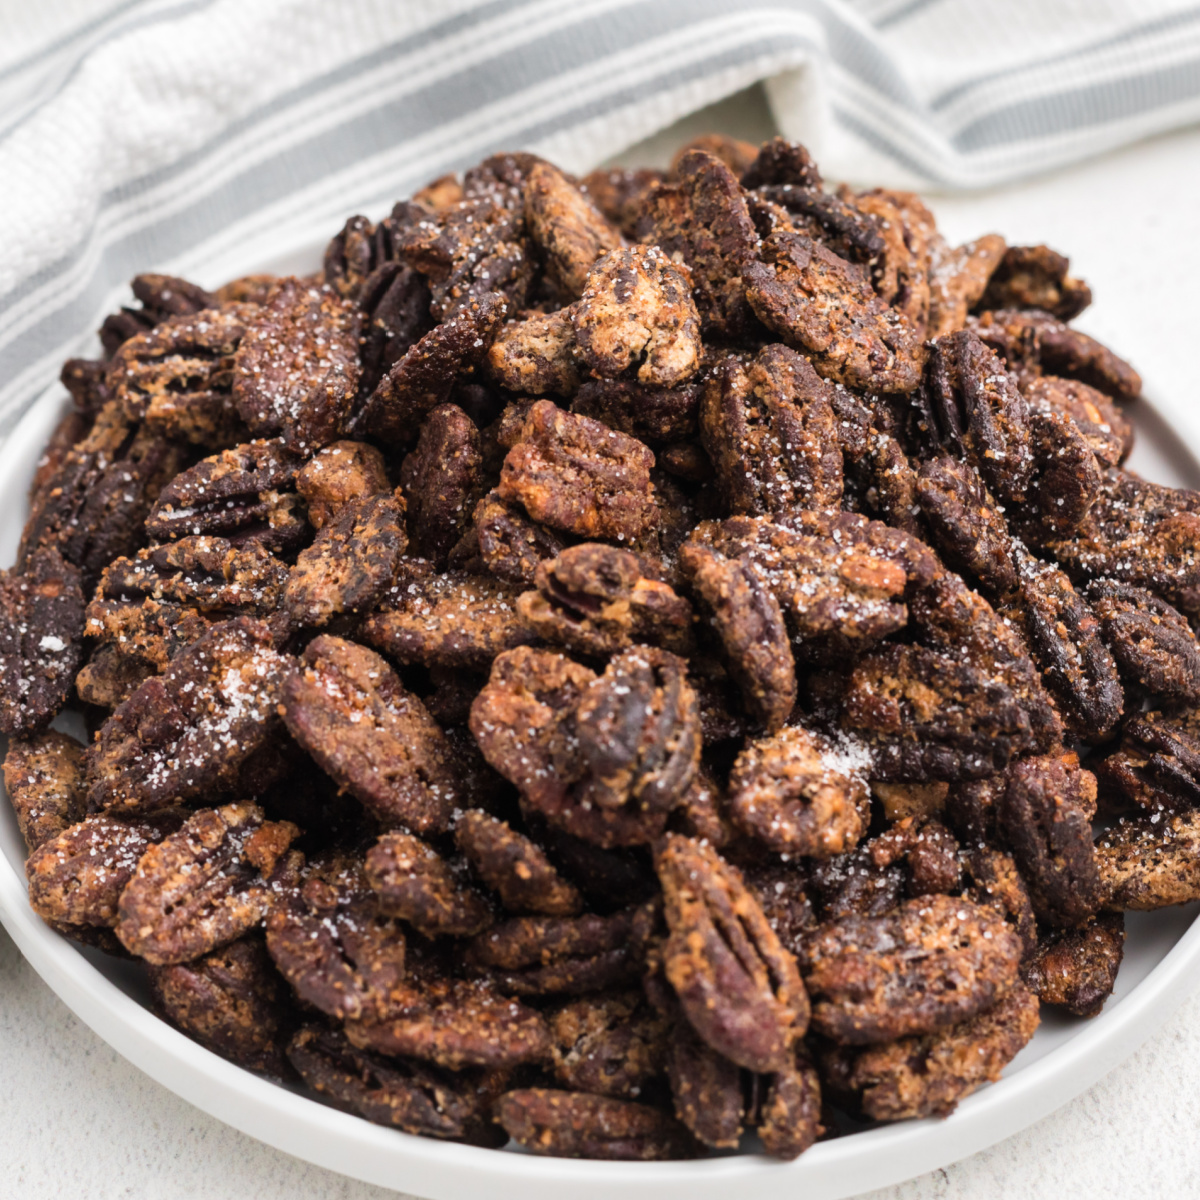 Candied pecans made in the air fryer served on a white plate.